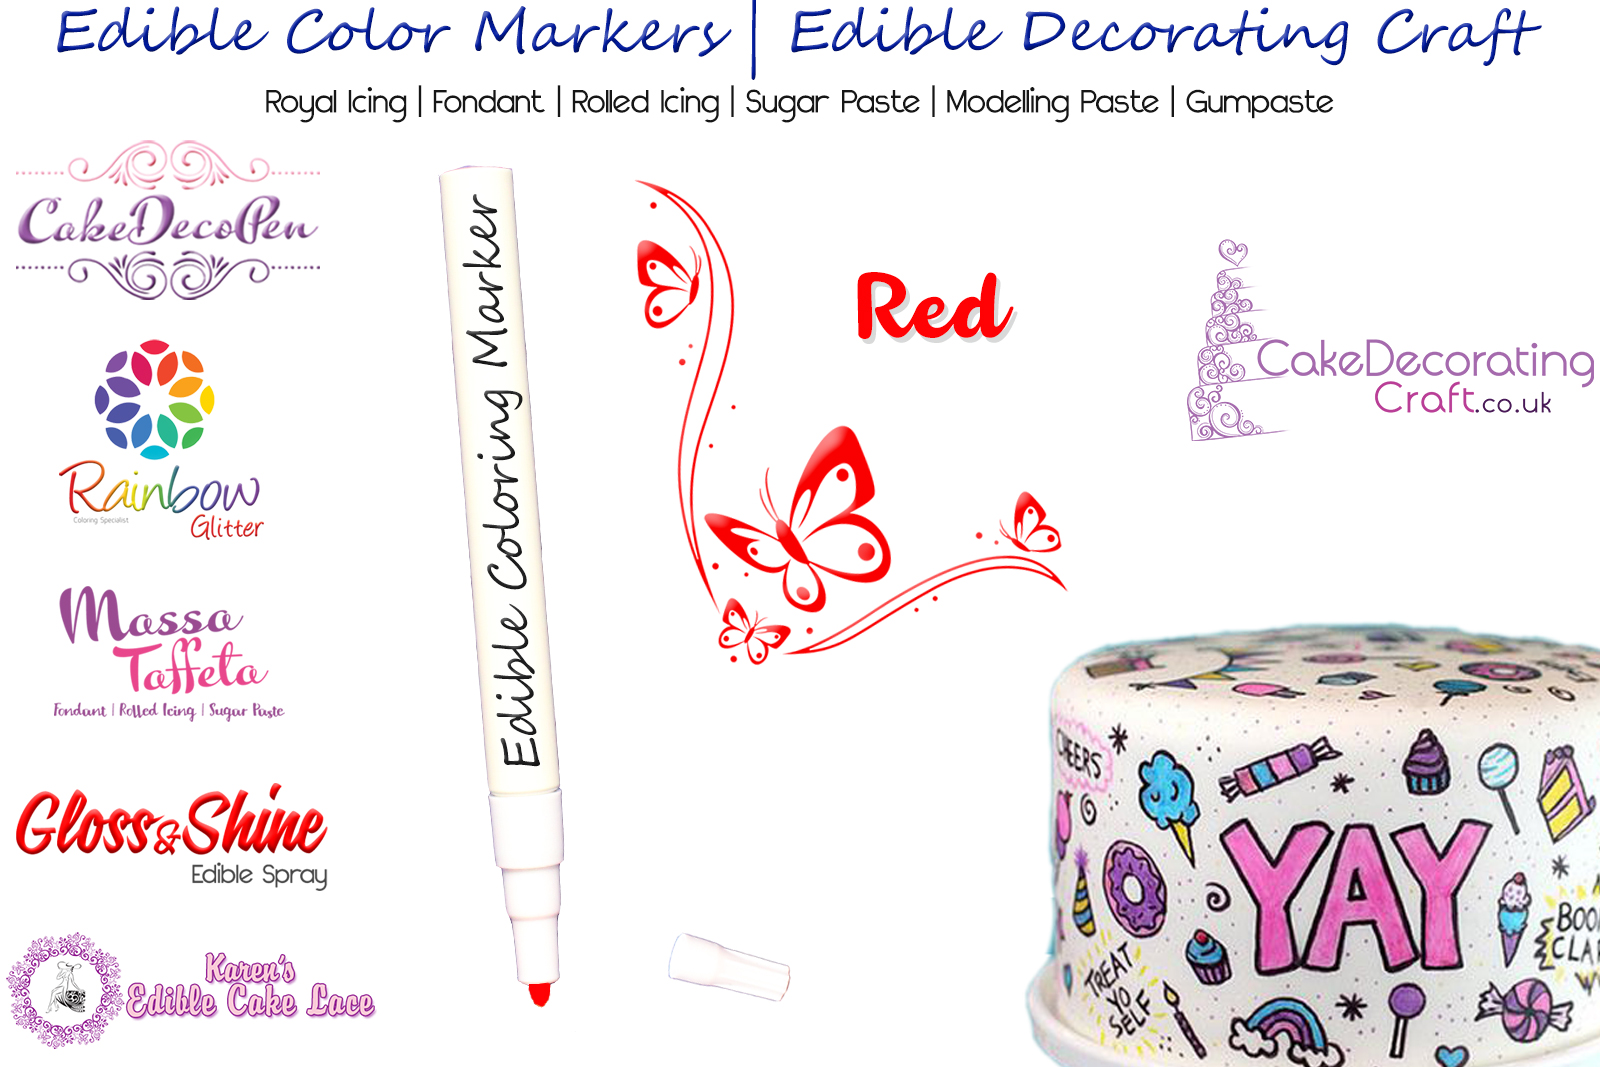 Cake Decorating Craft | Icing Pen | Icing Colouring Marker | Edible Painting Ink | Red | Christmas Cake Cupcake Decorating Craft